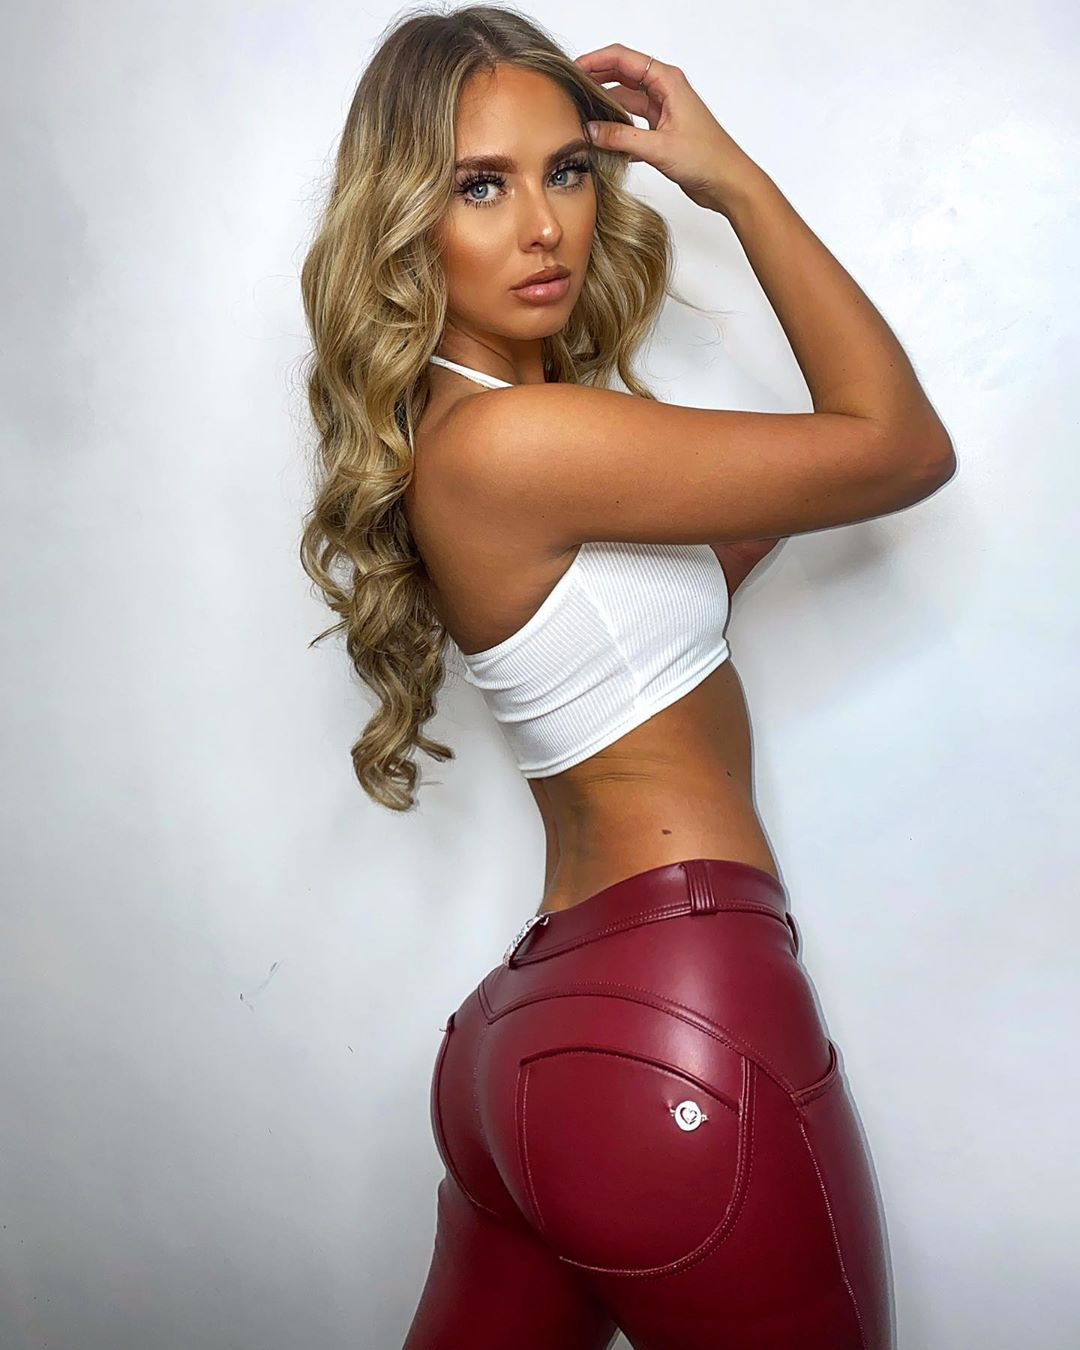 Molly-Krenz-Wallpapers-Insta-Fit-Bio-8